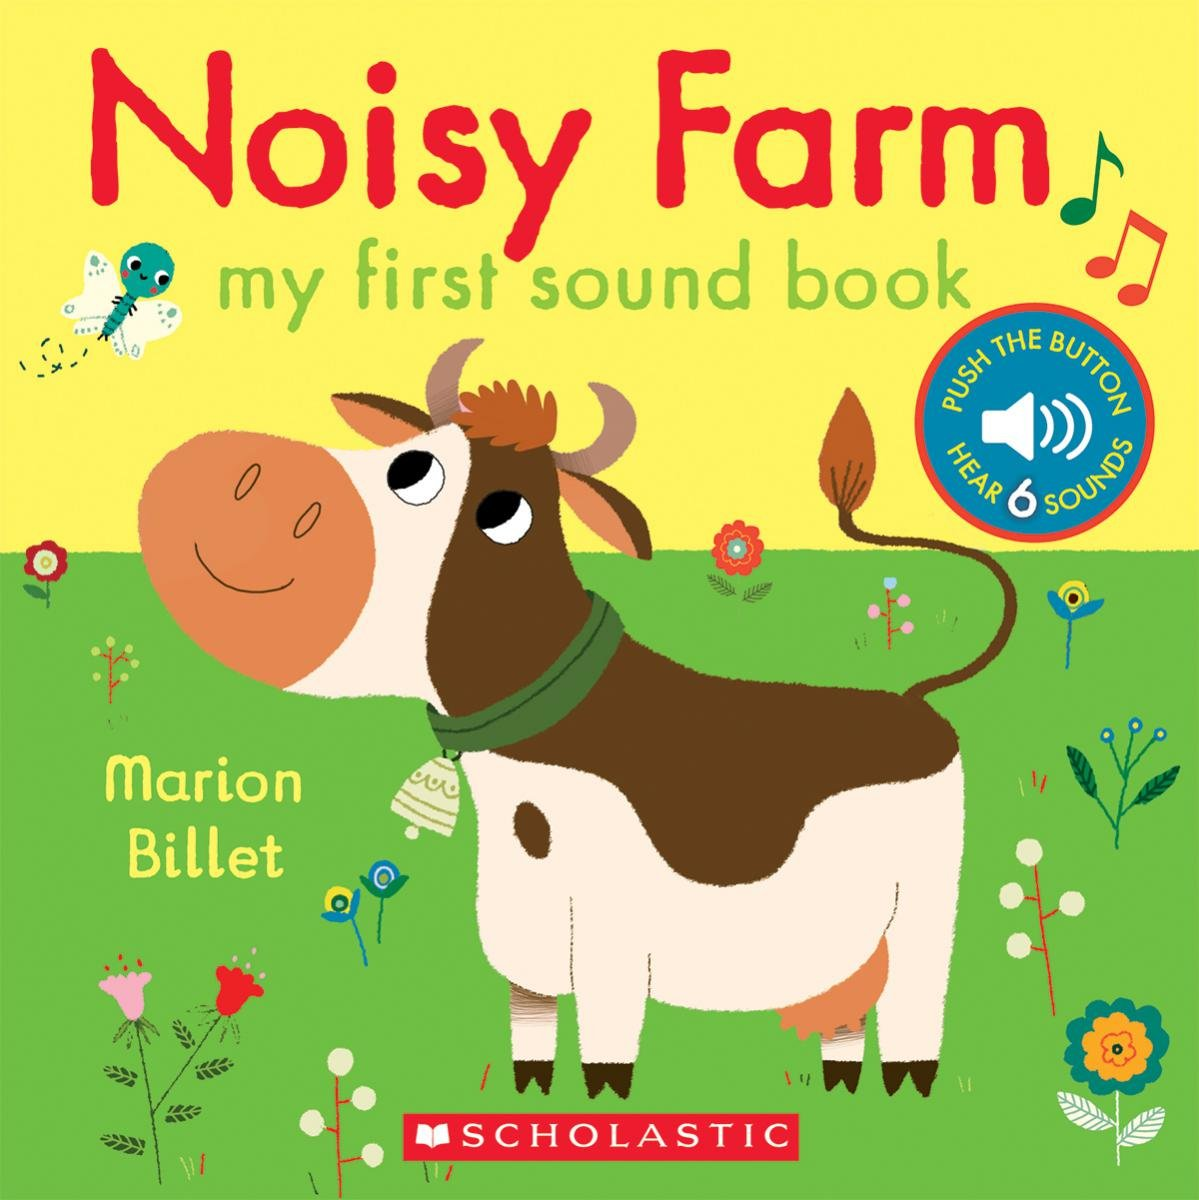 Noisy Farm book cover featuring cartoon cow on green grass